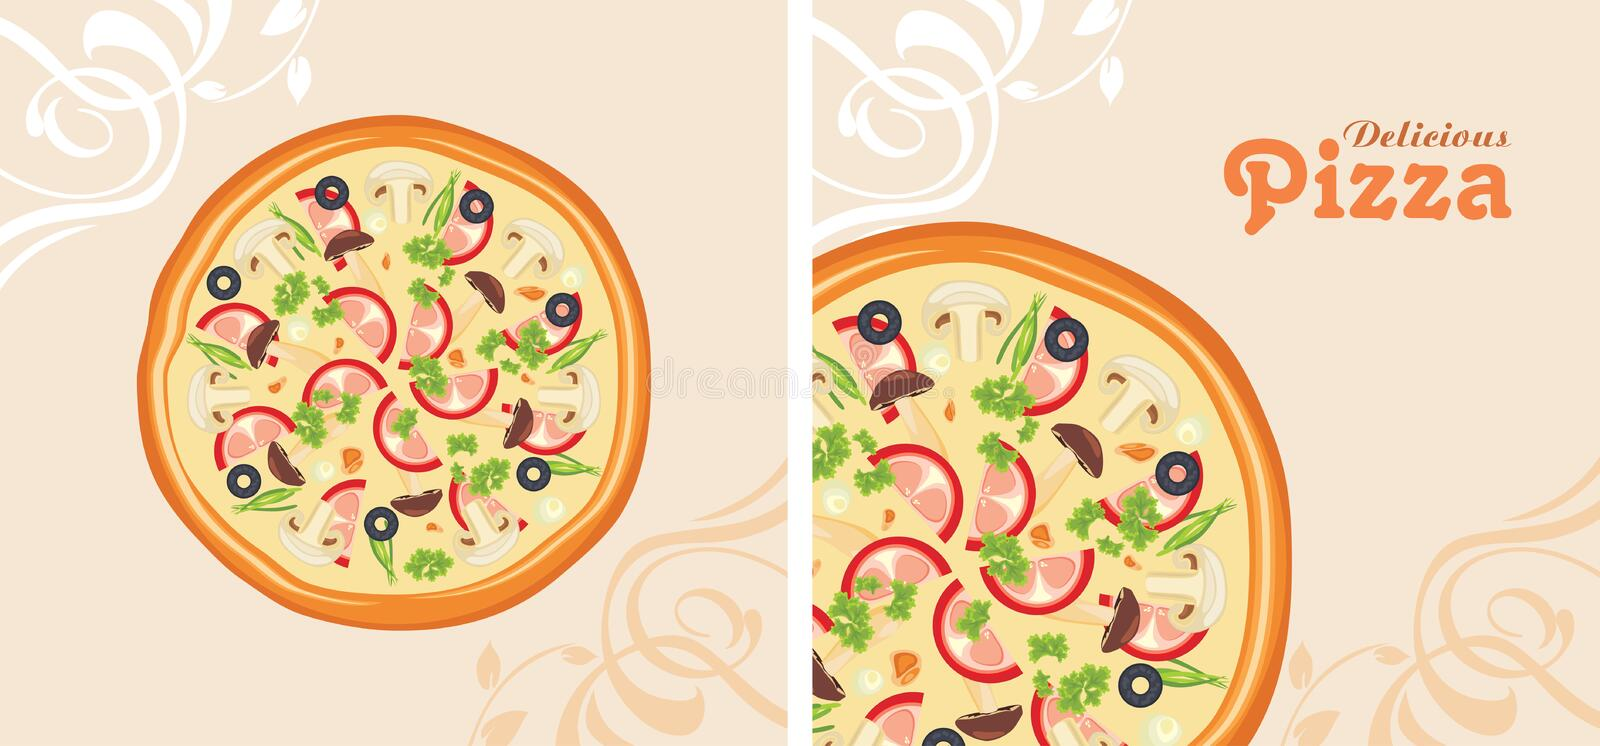 Download Delicious Pizza Background For Menu Design Stock Vector